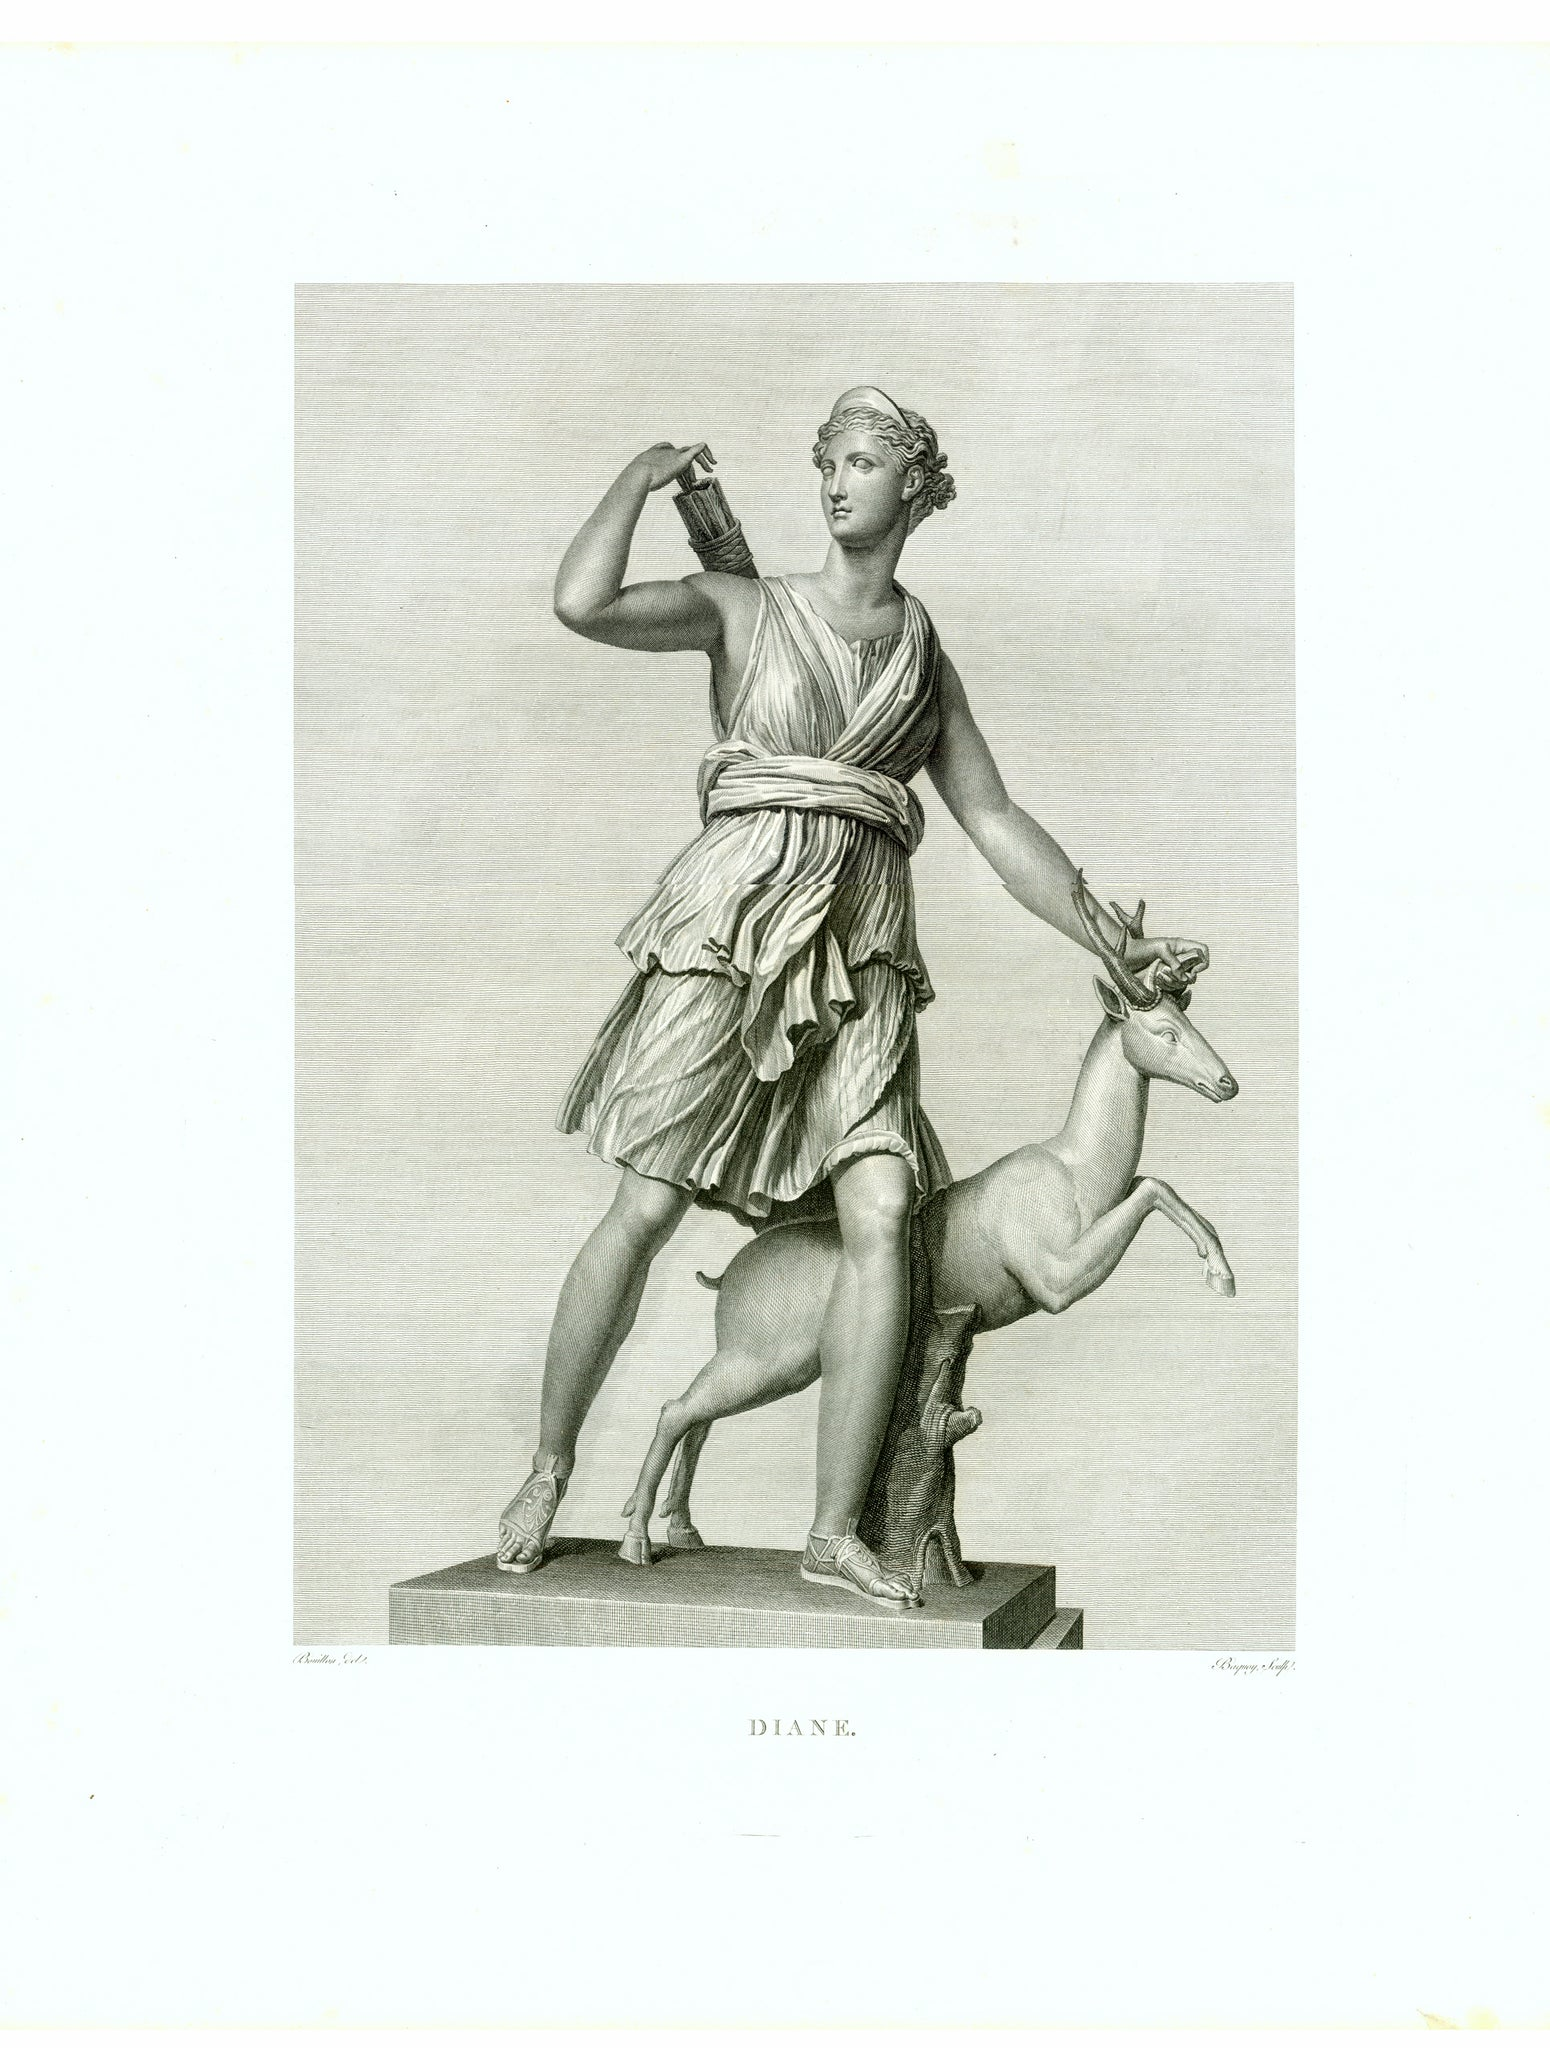 """Diane""  Copper etching by Baquoy  After the drawing by Bouillon  Published in ""Musee Royal"" by Henri Laurent  Paris, 1816  Roman Goddess of the Hunt ( Greek mythology: Artemis)  This statue, in the possession of the Louvre in Paris, has various names:  Diane of Versailles - Diana Huntress - Diana with a Doe - Diane a la biche. Diana, Artemis"